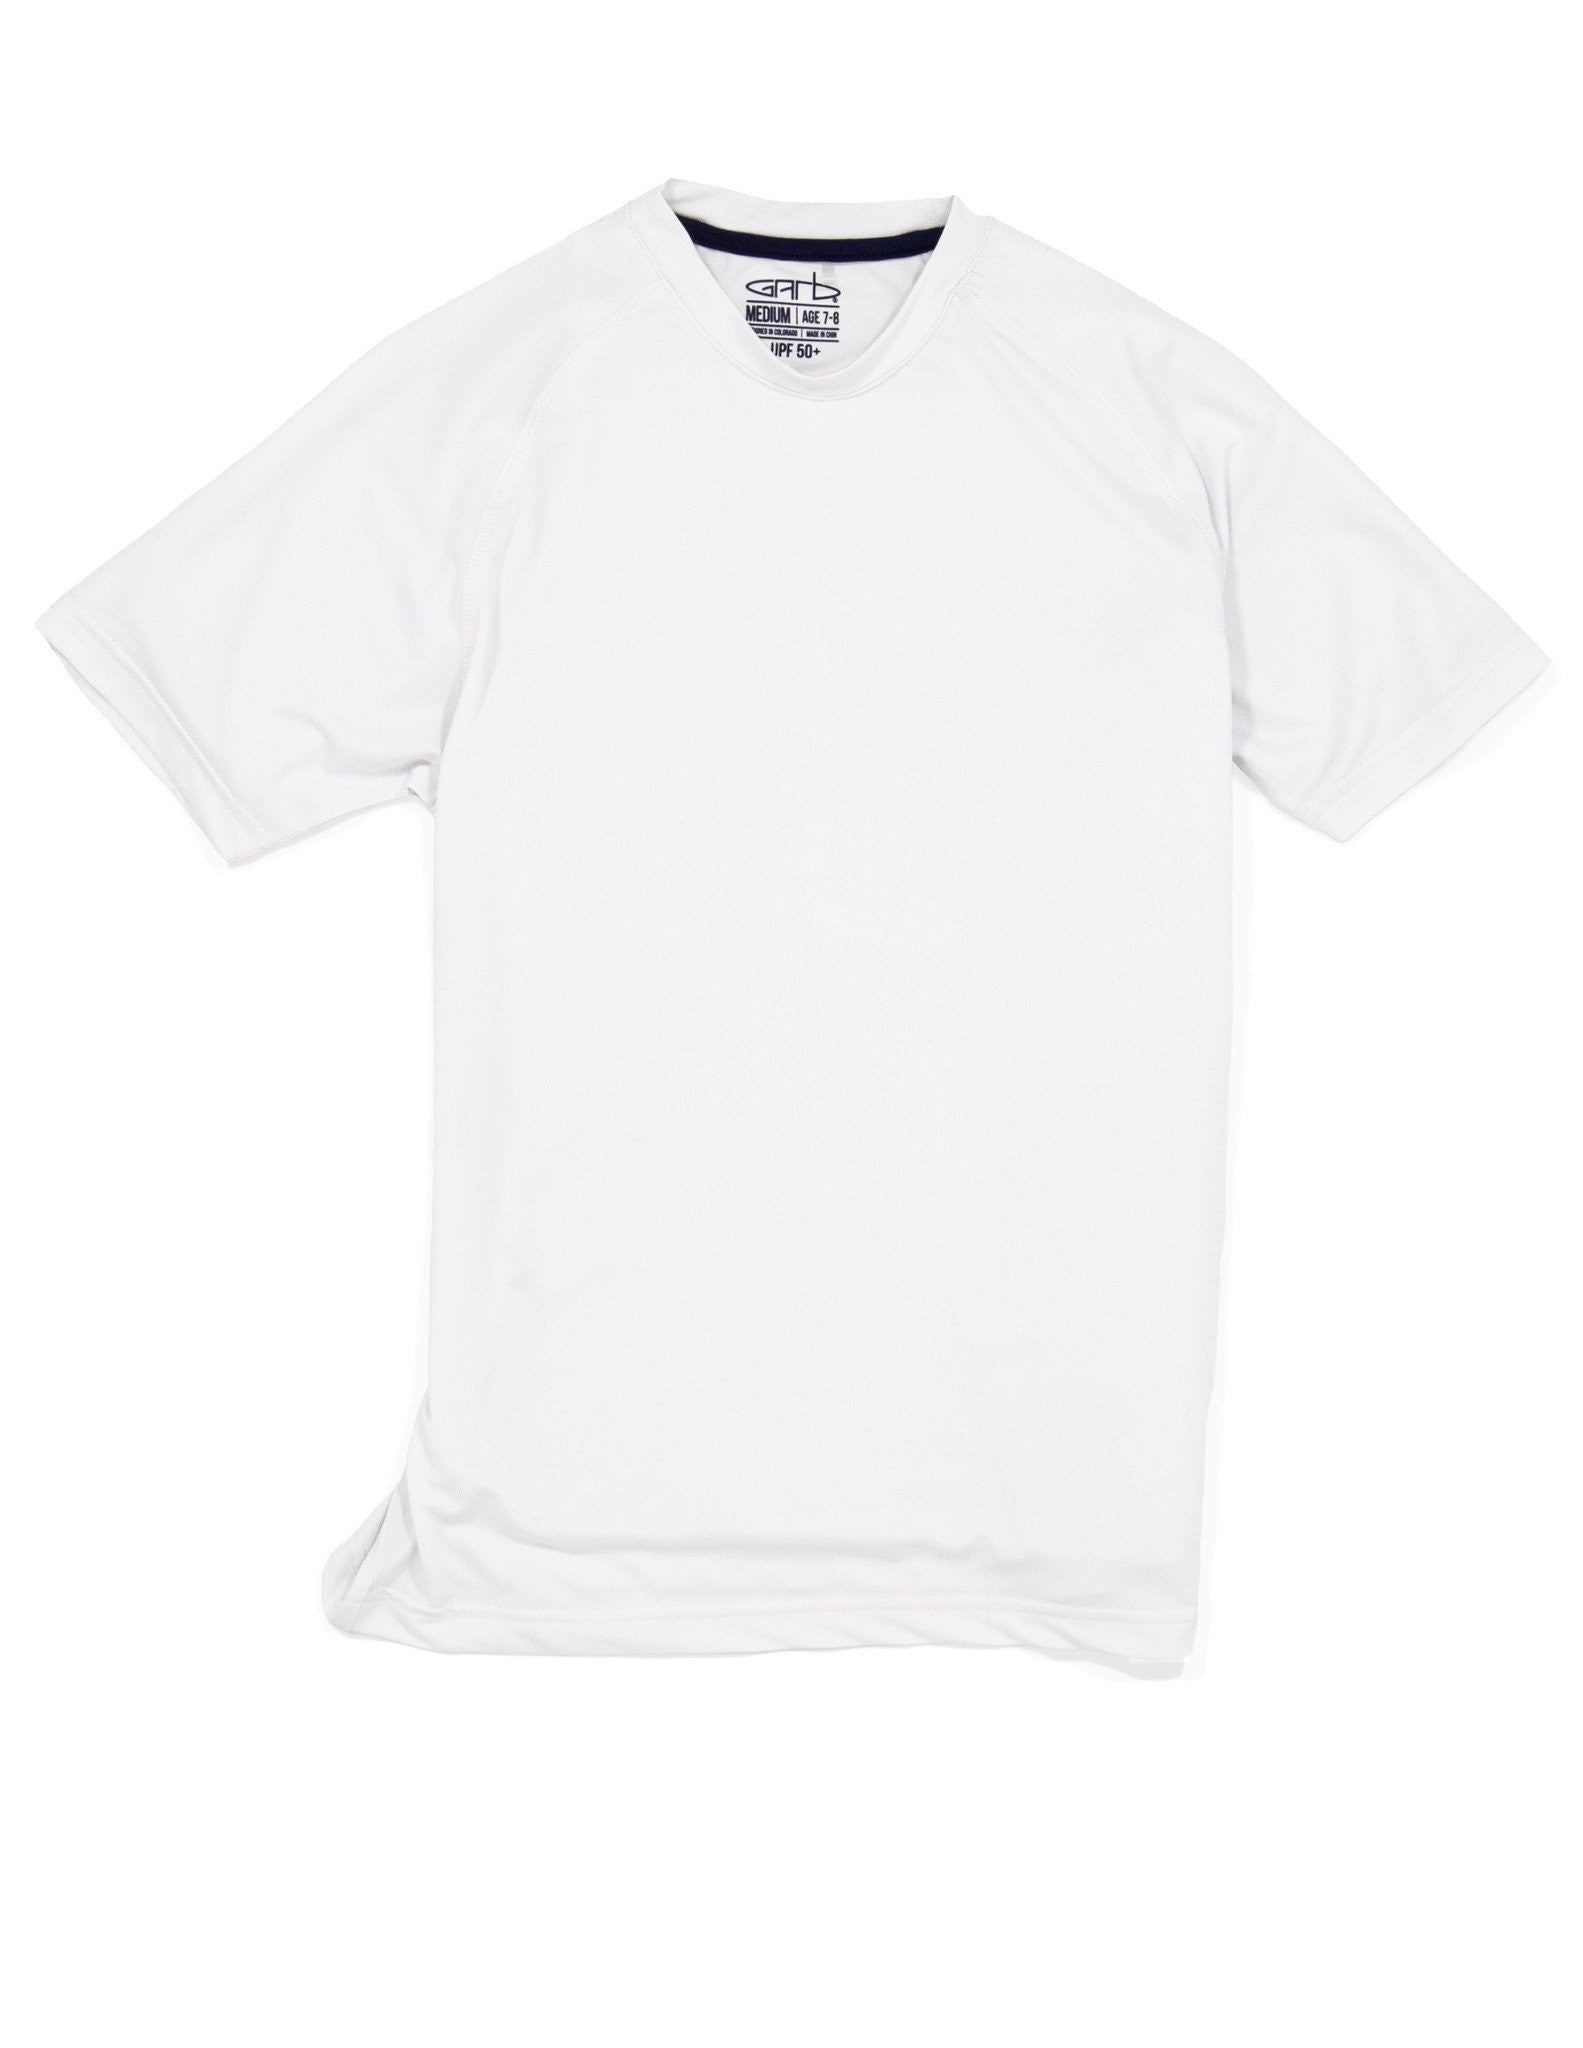 Garb boy's golf crew tee in white